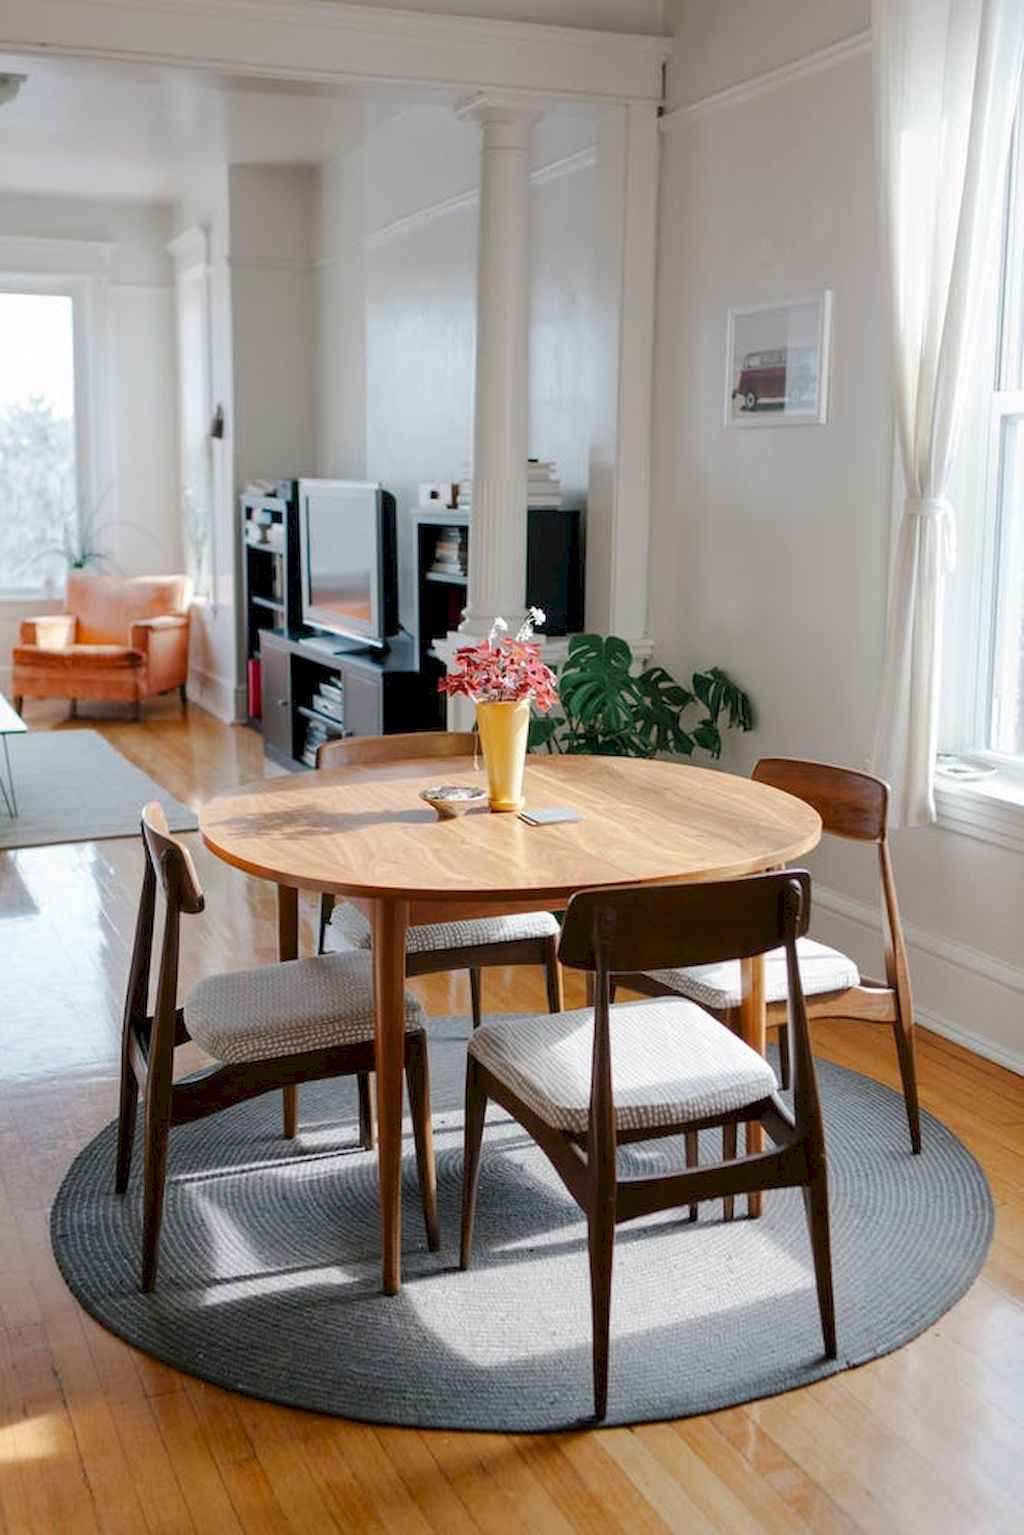 Couples first apartment decorating ideas (22)